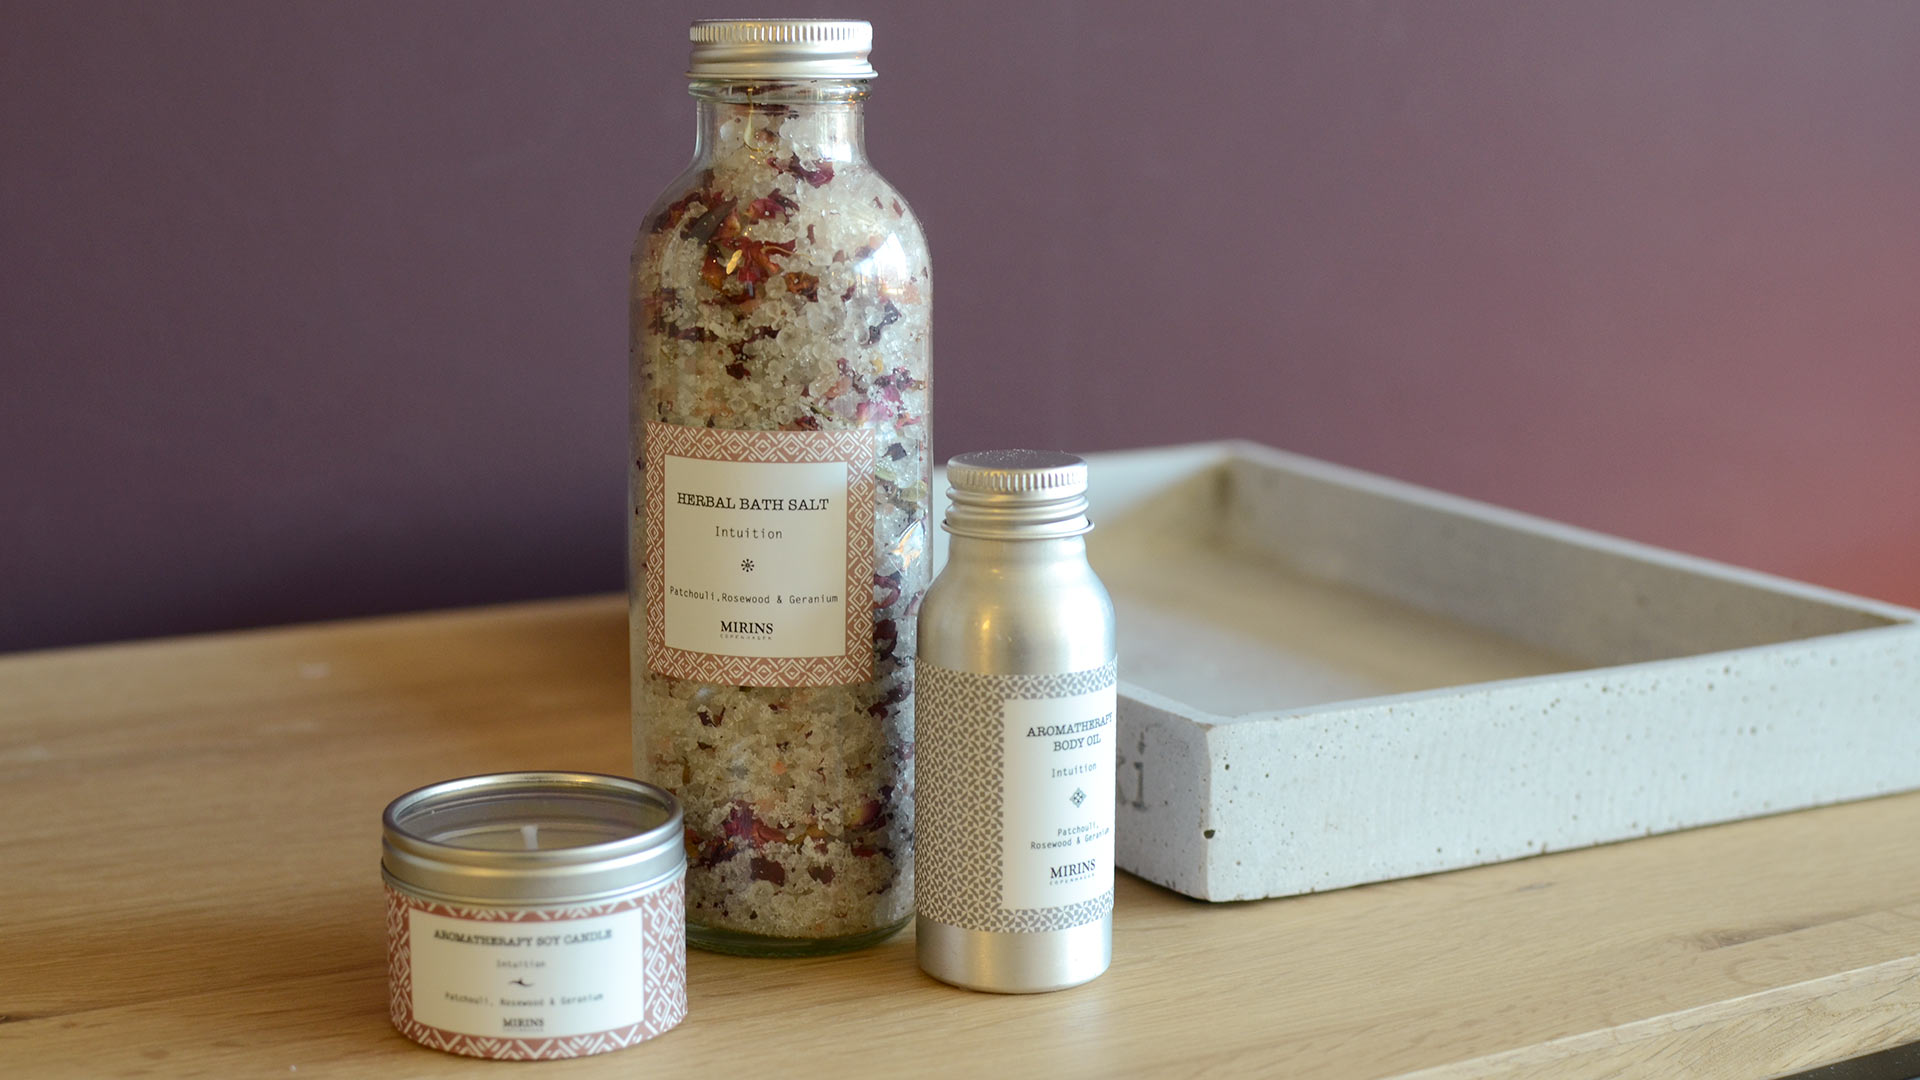 Mirins-Intuition-gift-set-bath-salts-body-oil-candle